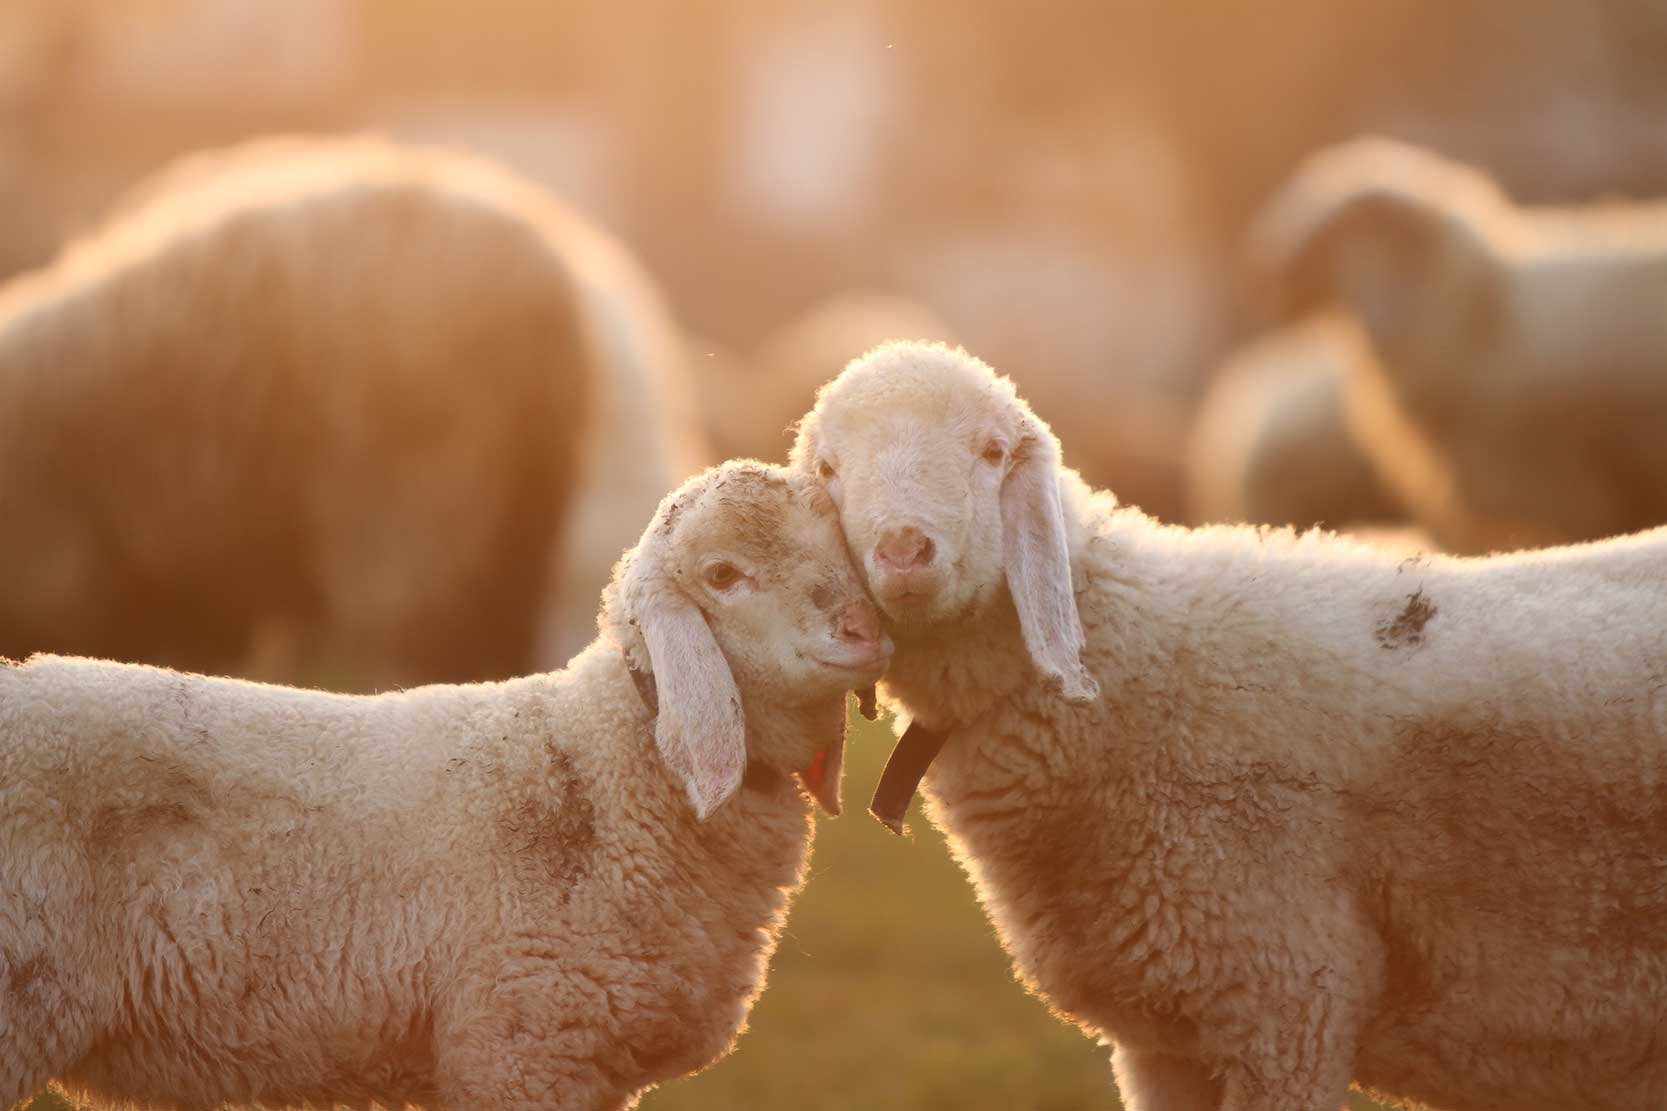 Cuddling Lambs taken during golden hour